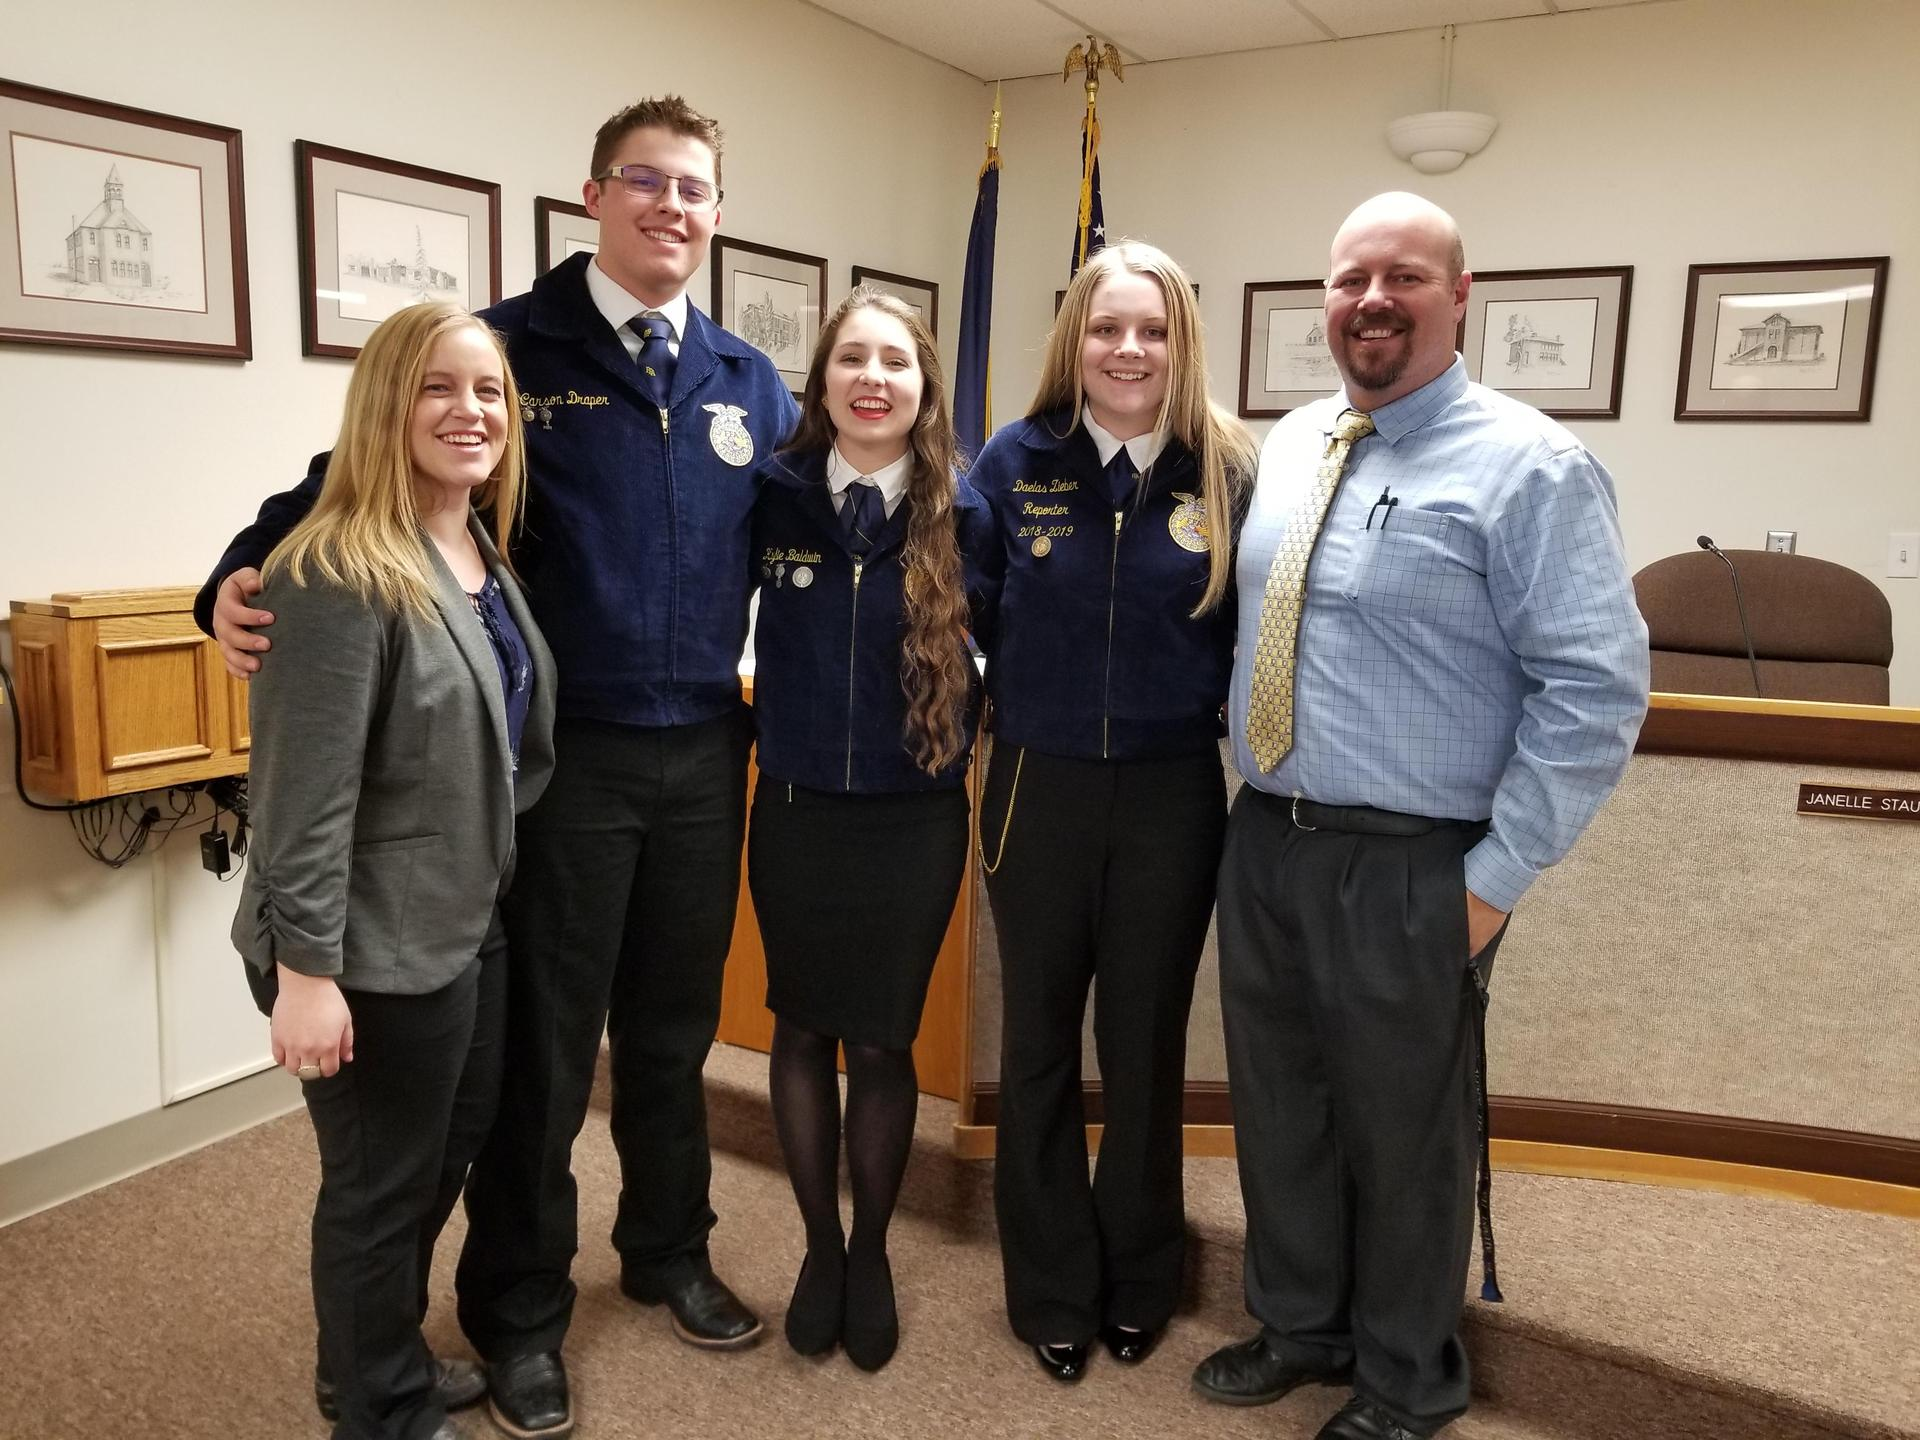 FFA student leaders and advisors pose before the meeting.